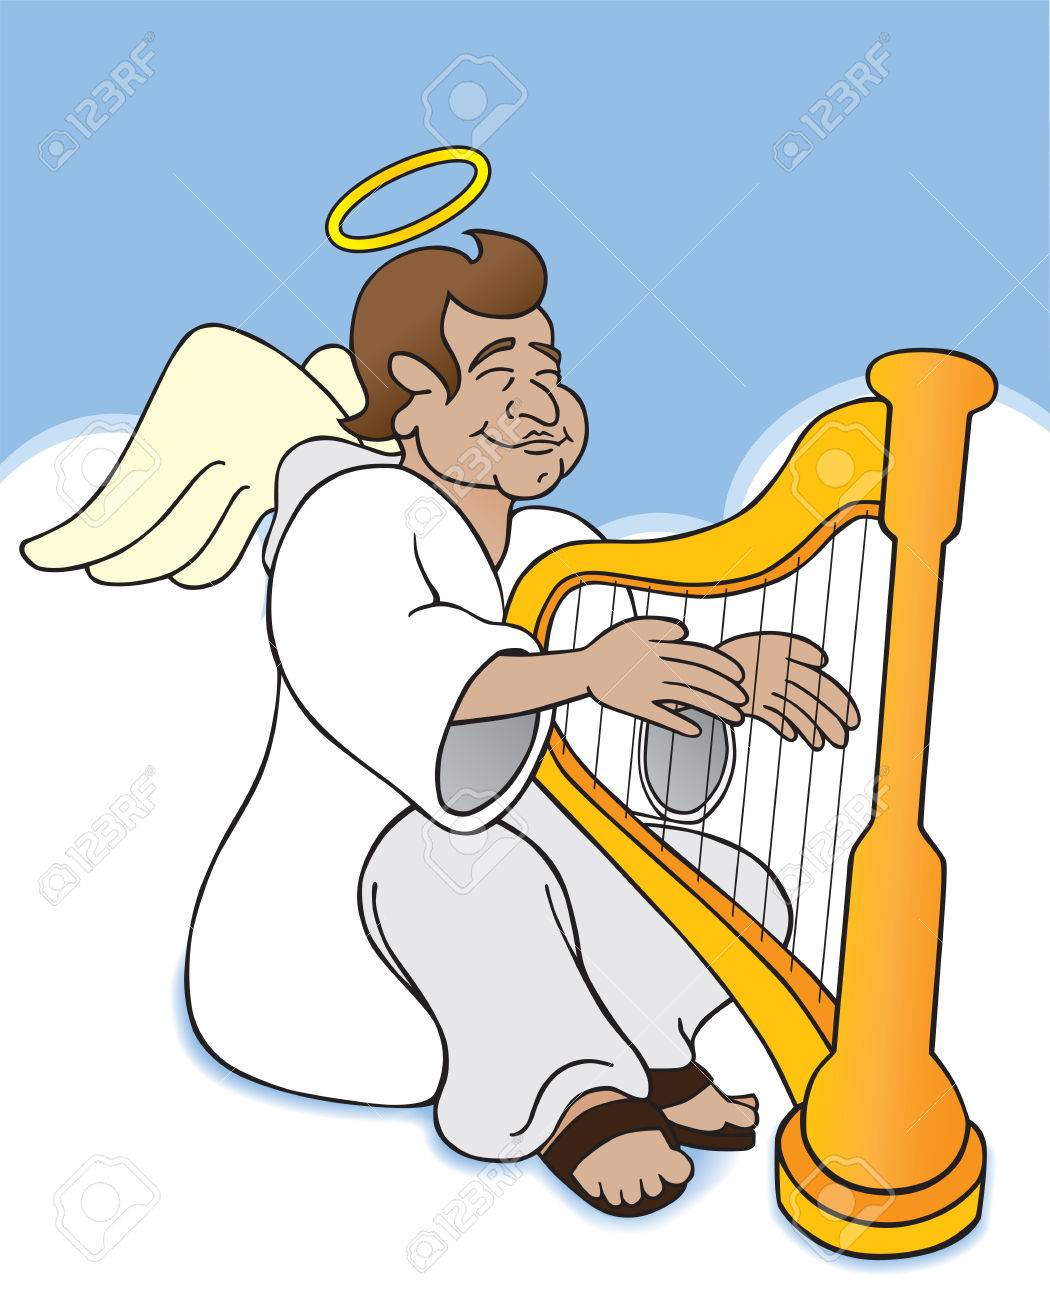 Angel sitting among the clouds in heaven strumming his harp - 33625621